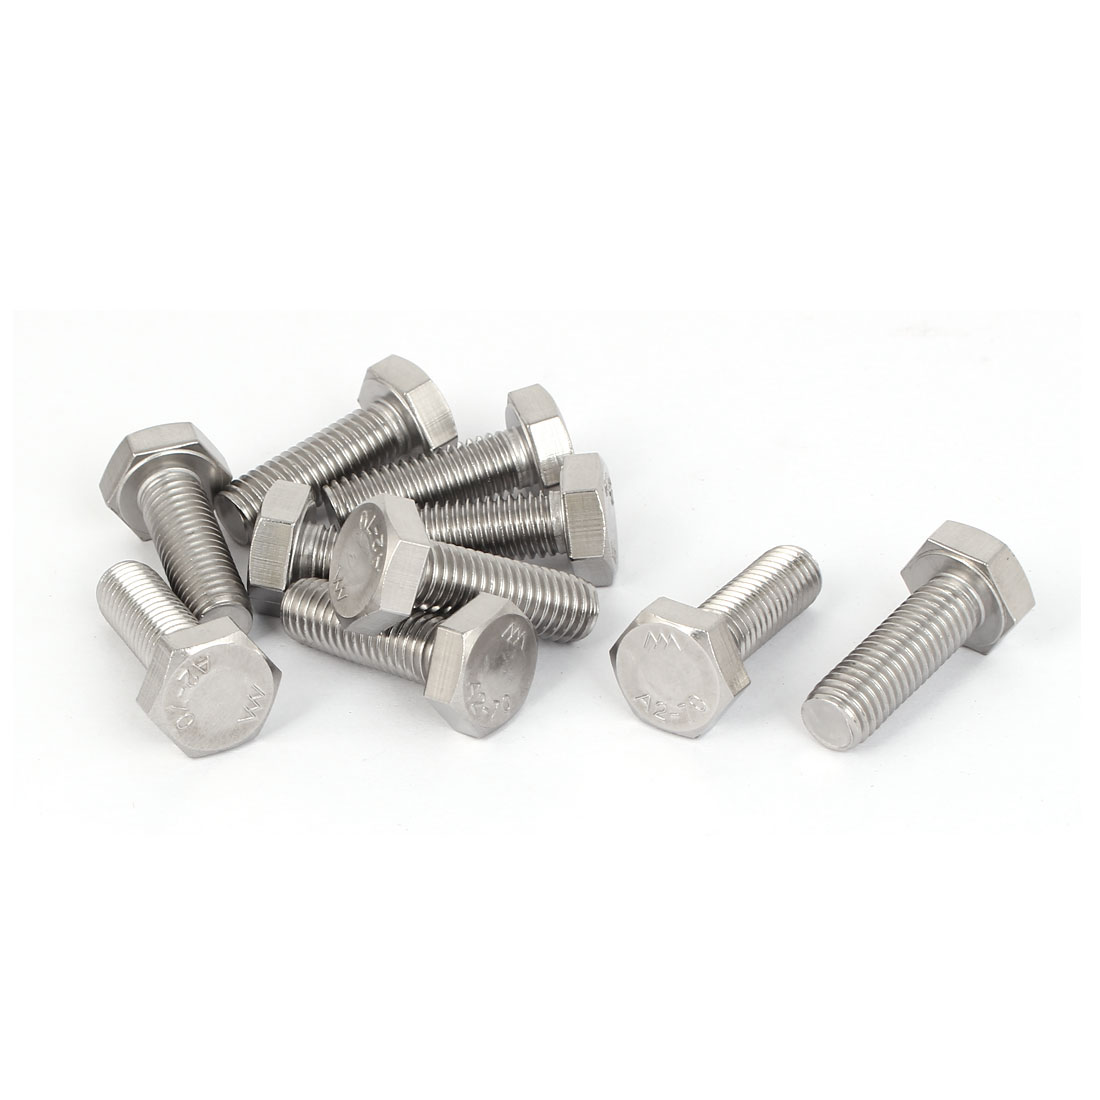 M10x30mm Hex Head Cap Hexagonal Bolt Fastener Screw Silver Tone 10psc